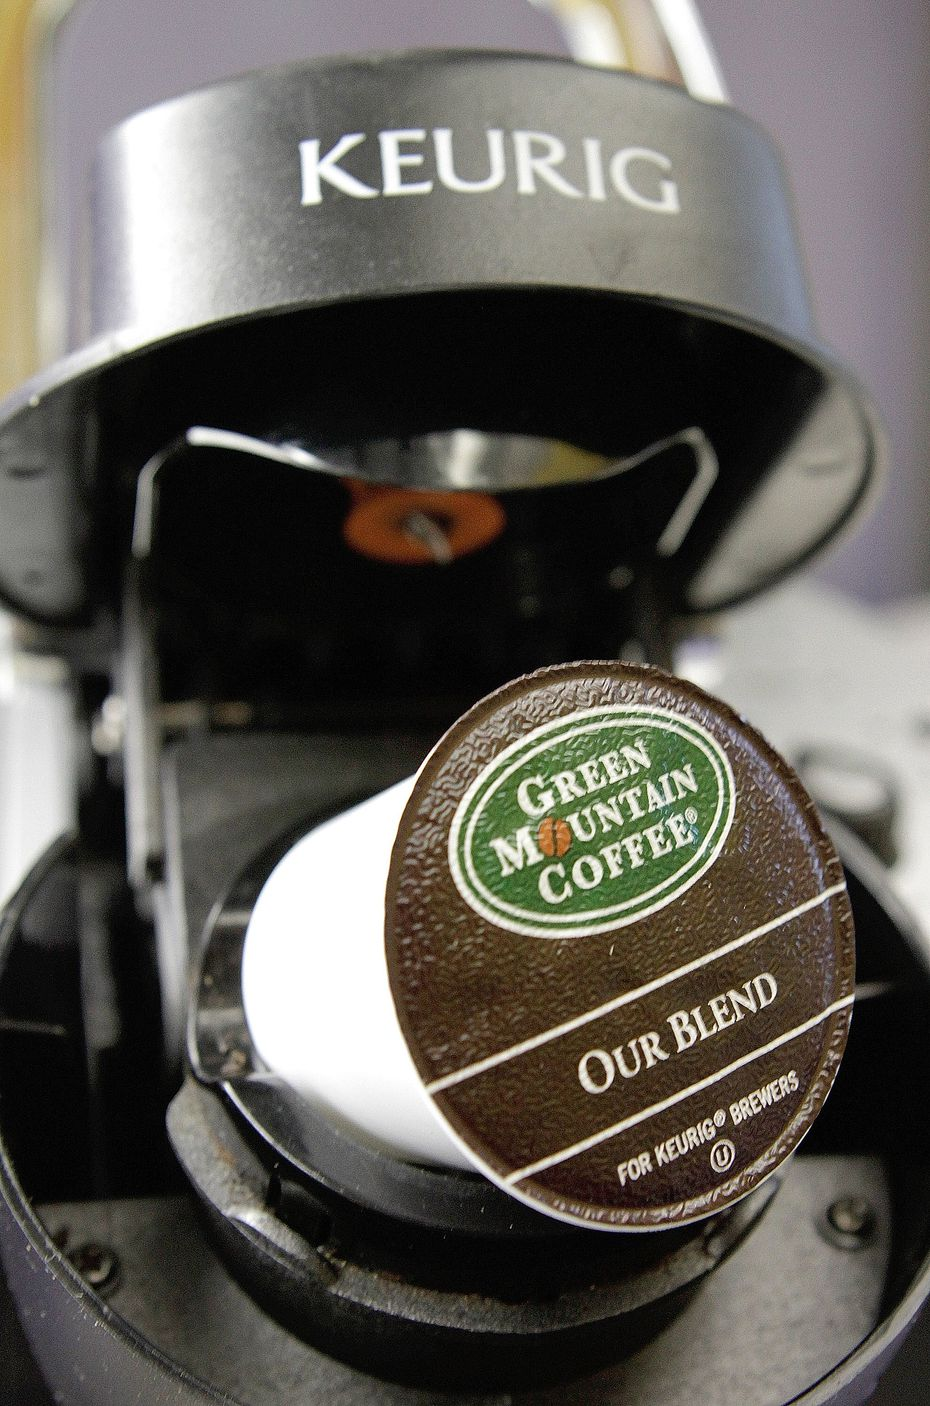 A Green Mountain Coffee single-serving brewing cup is seen in a Keurig machine.